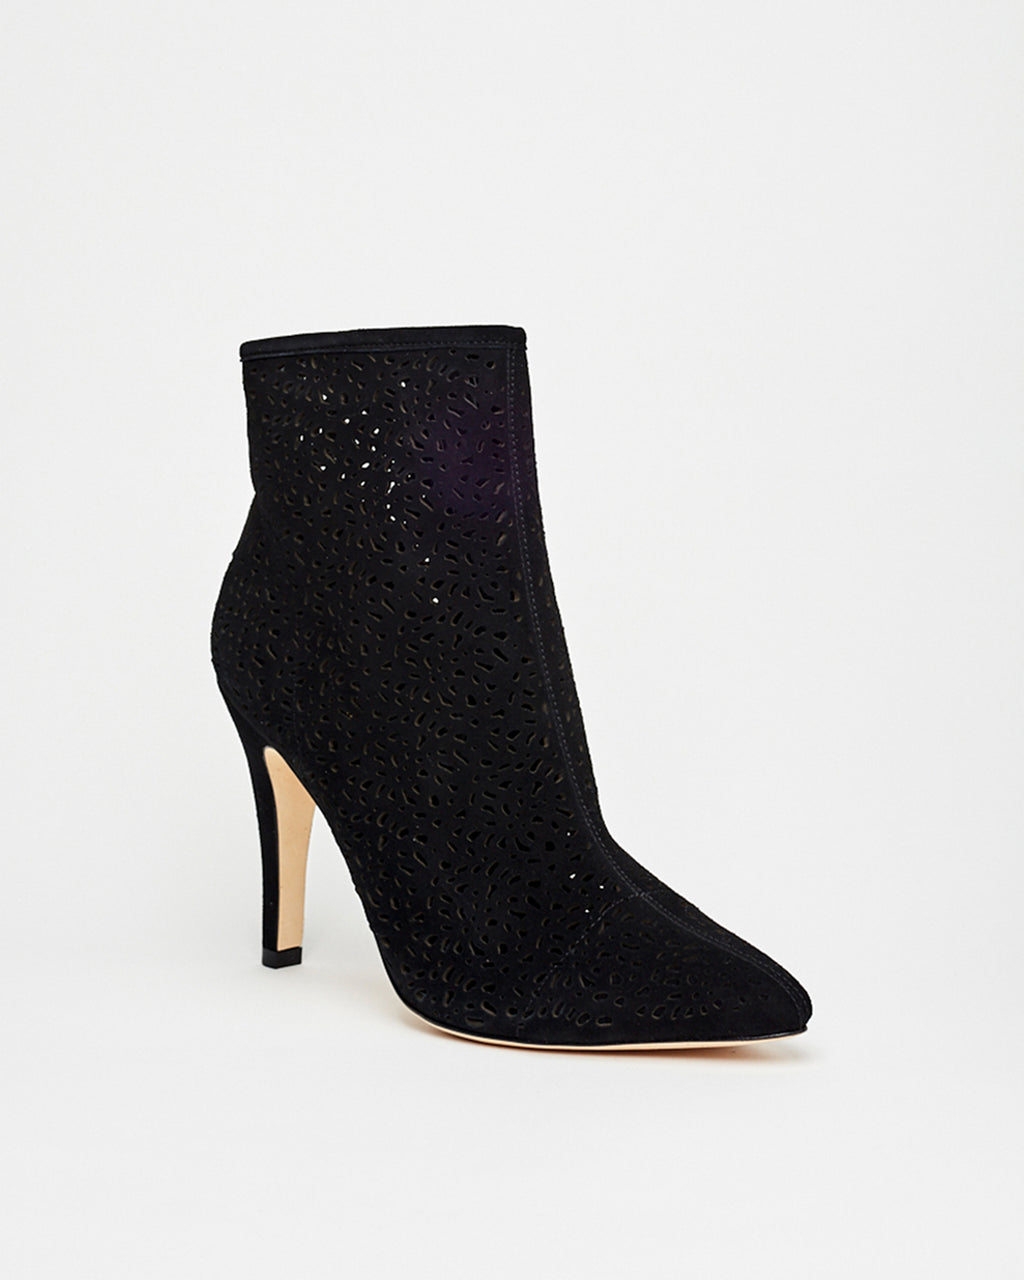 RIVER - RIVERSIDE SUEDE BOOTIES - shoes - shoes - In a soft suede, these booties feature a pointed toe and laser cutouts for a trendy addition to any look. Hand crafted, these heels are completed with a leather sole and side zipper for closure.�